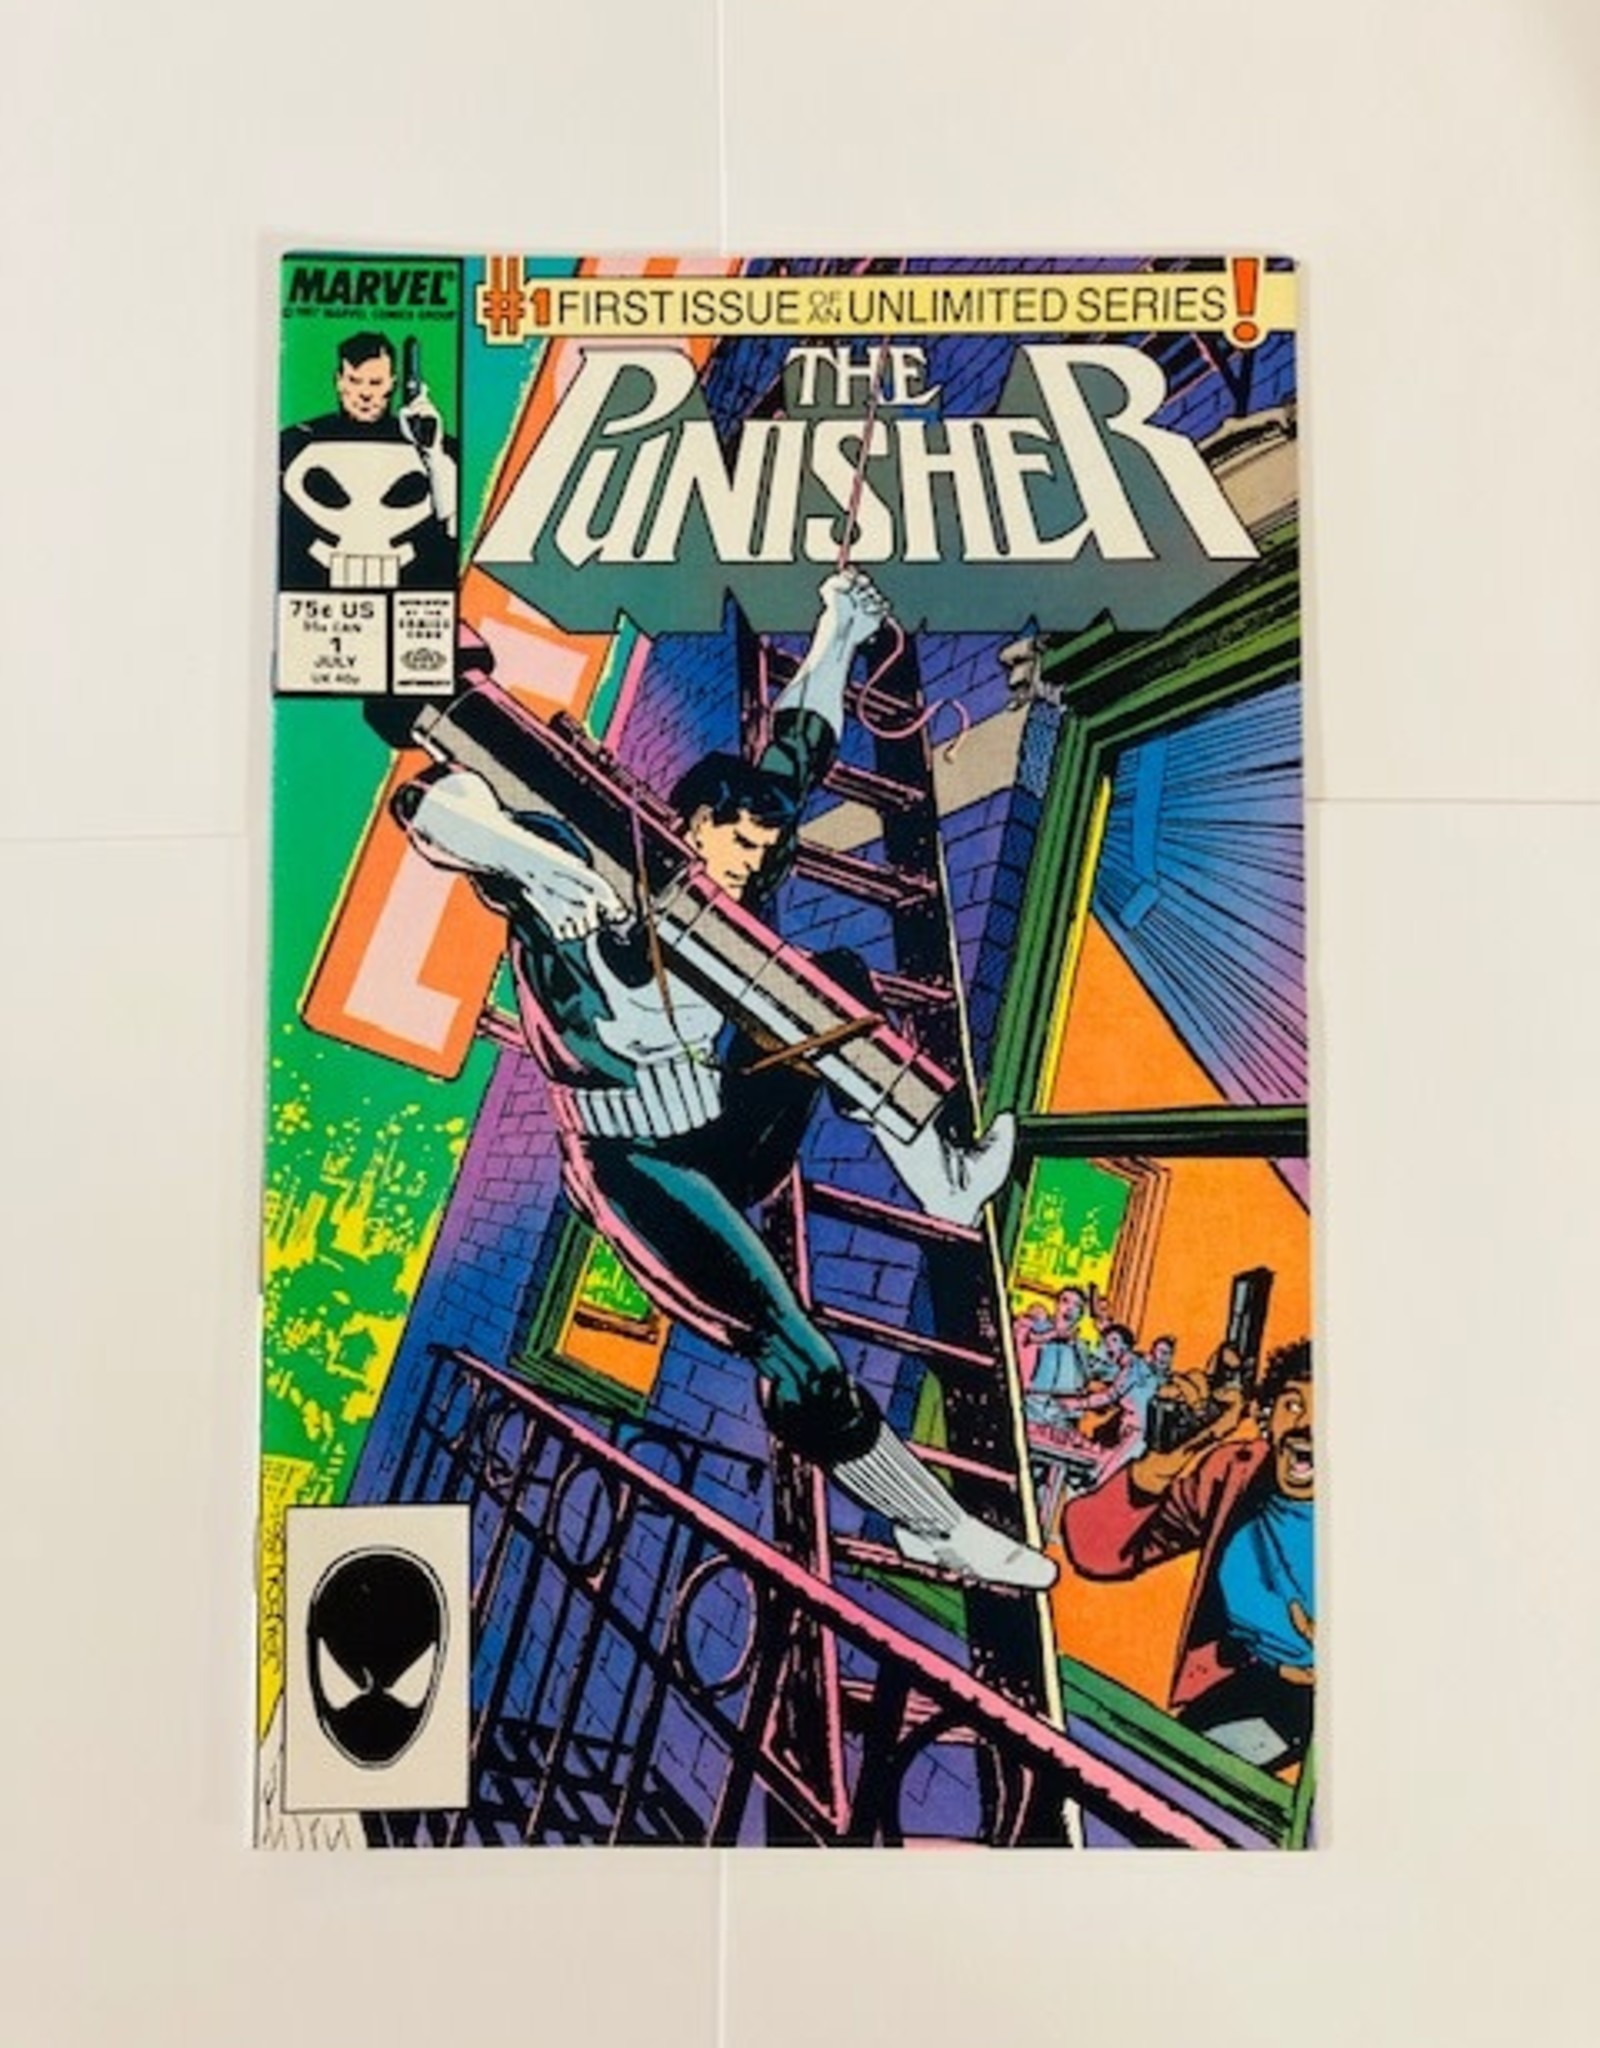 Marvel Comics Punisher #1 (1987)